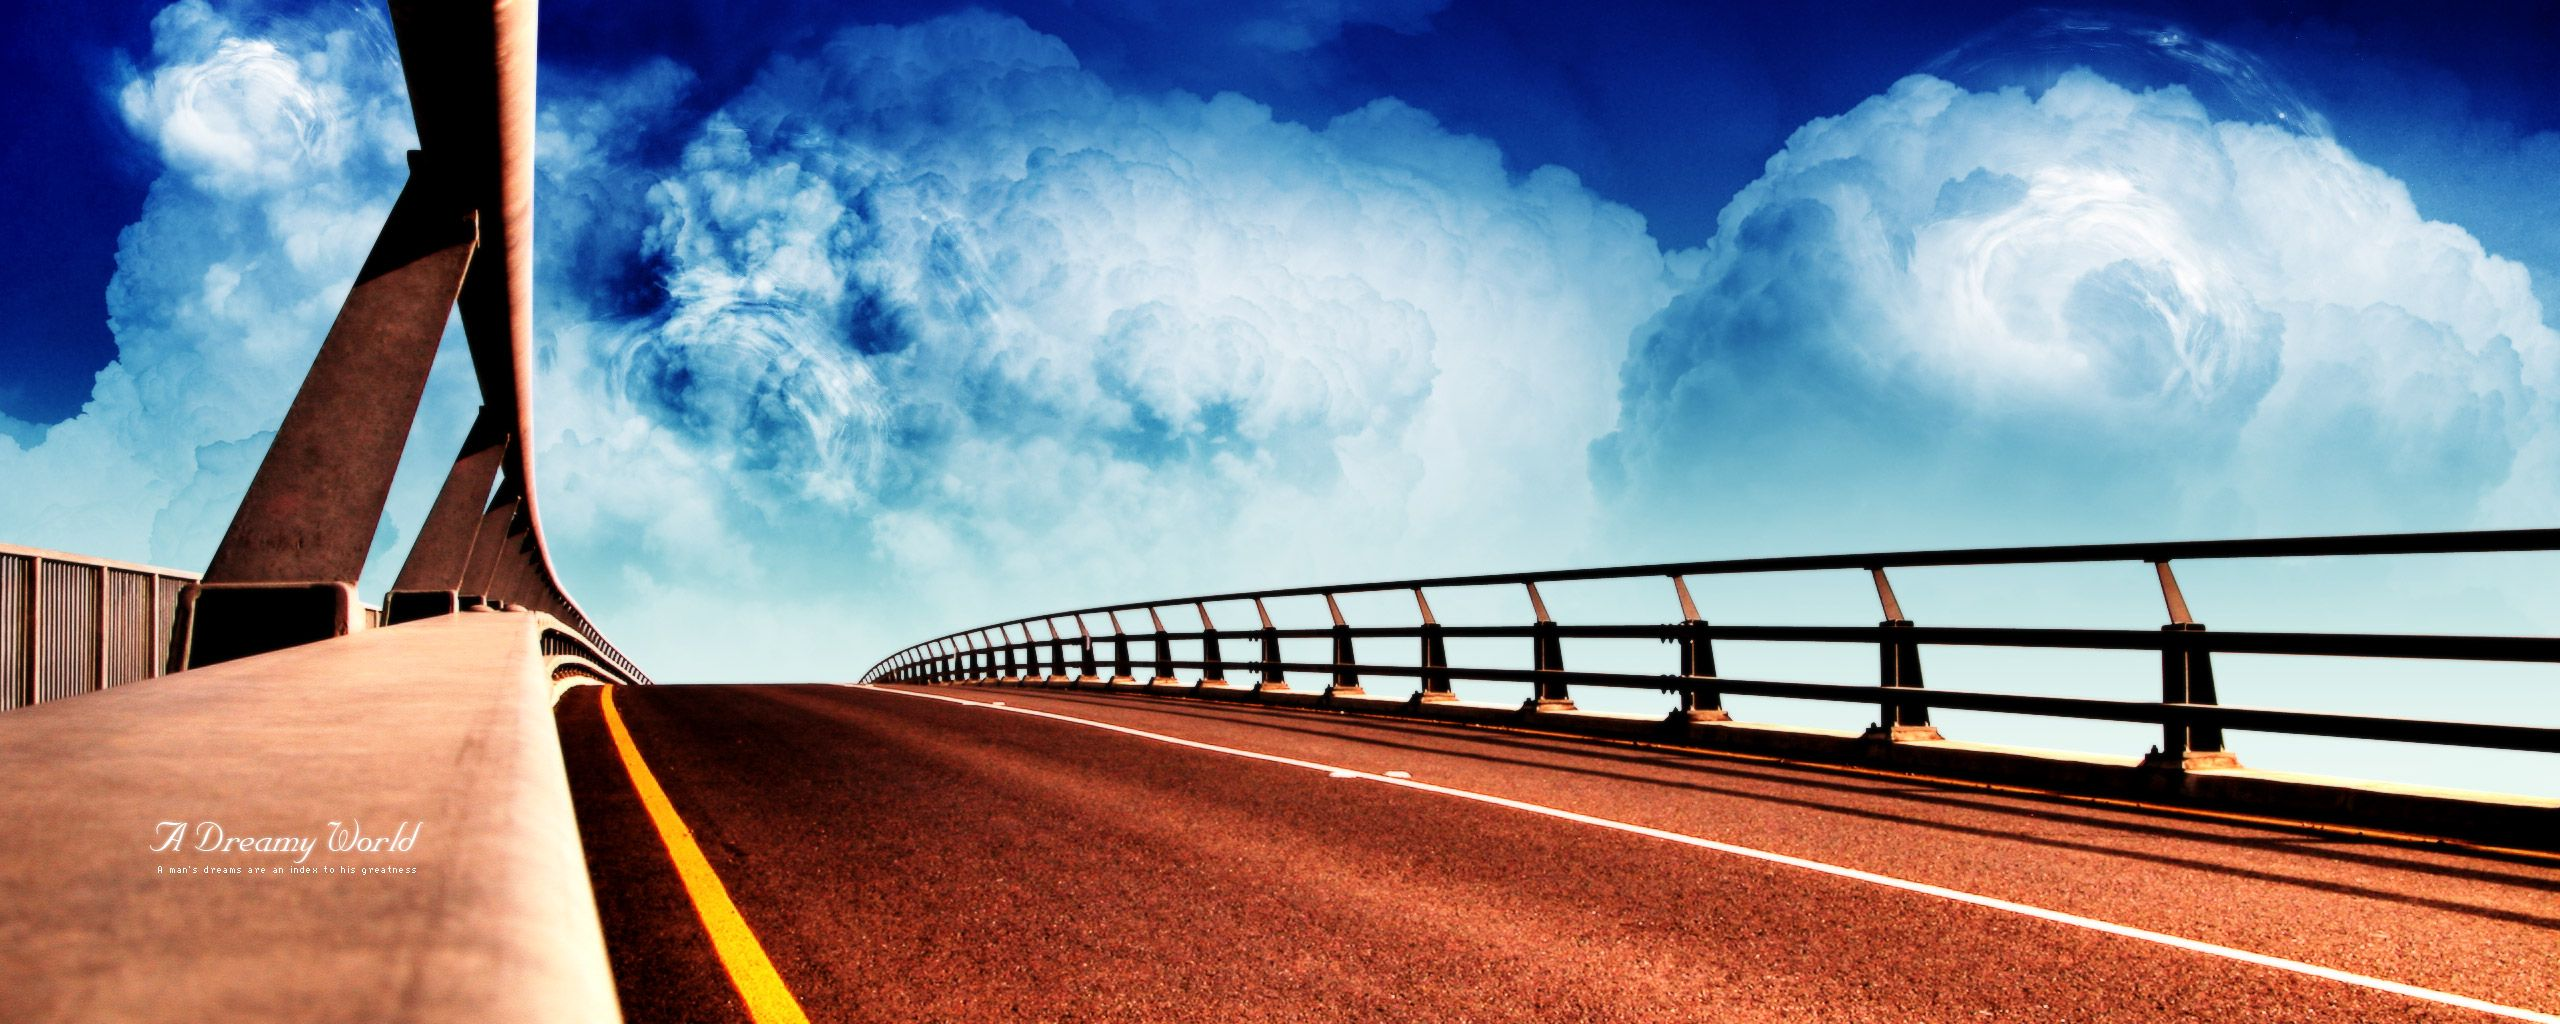 roads_wallpaper4202